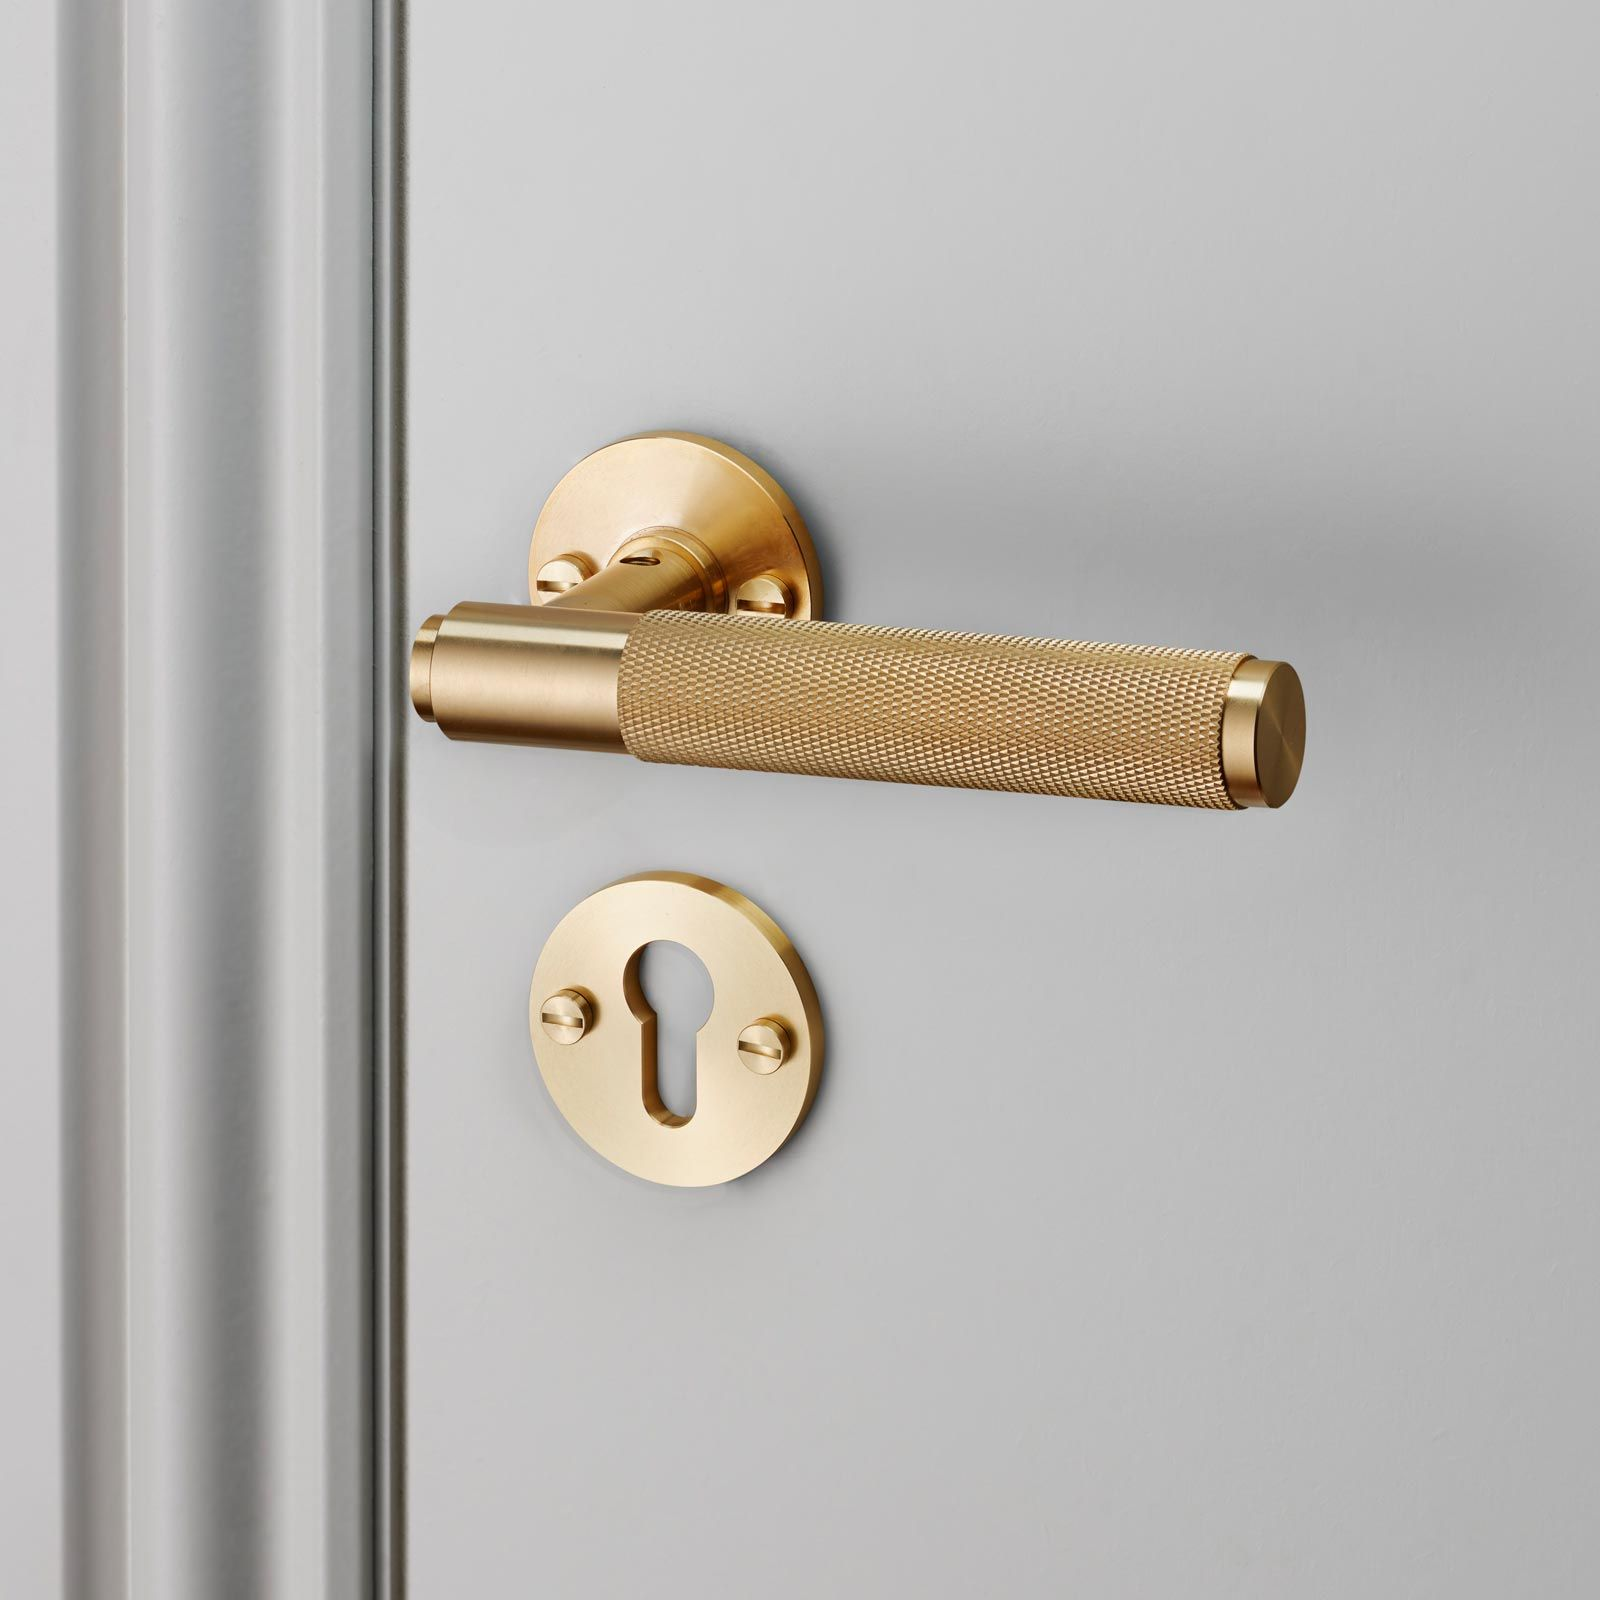 Buster & Punch New Hardware Collection | Hardware, Door accessories ...